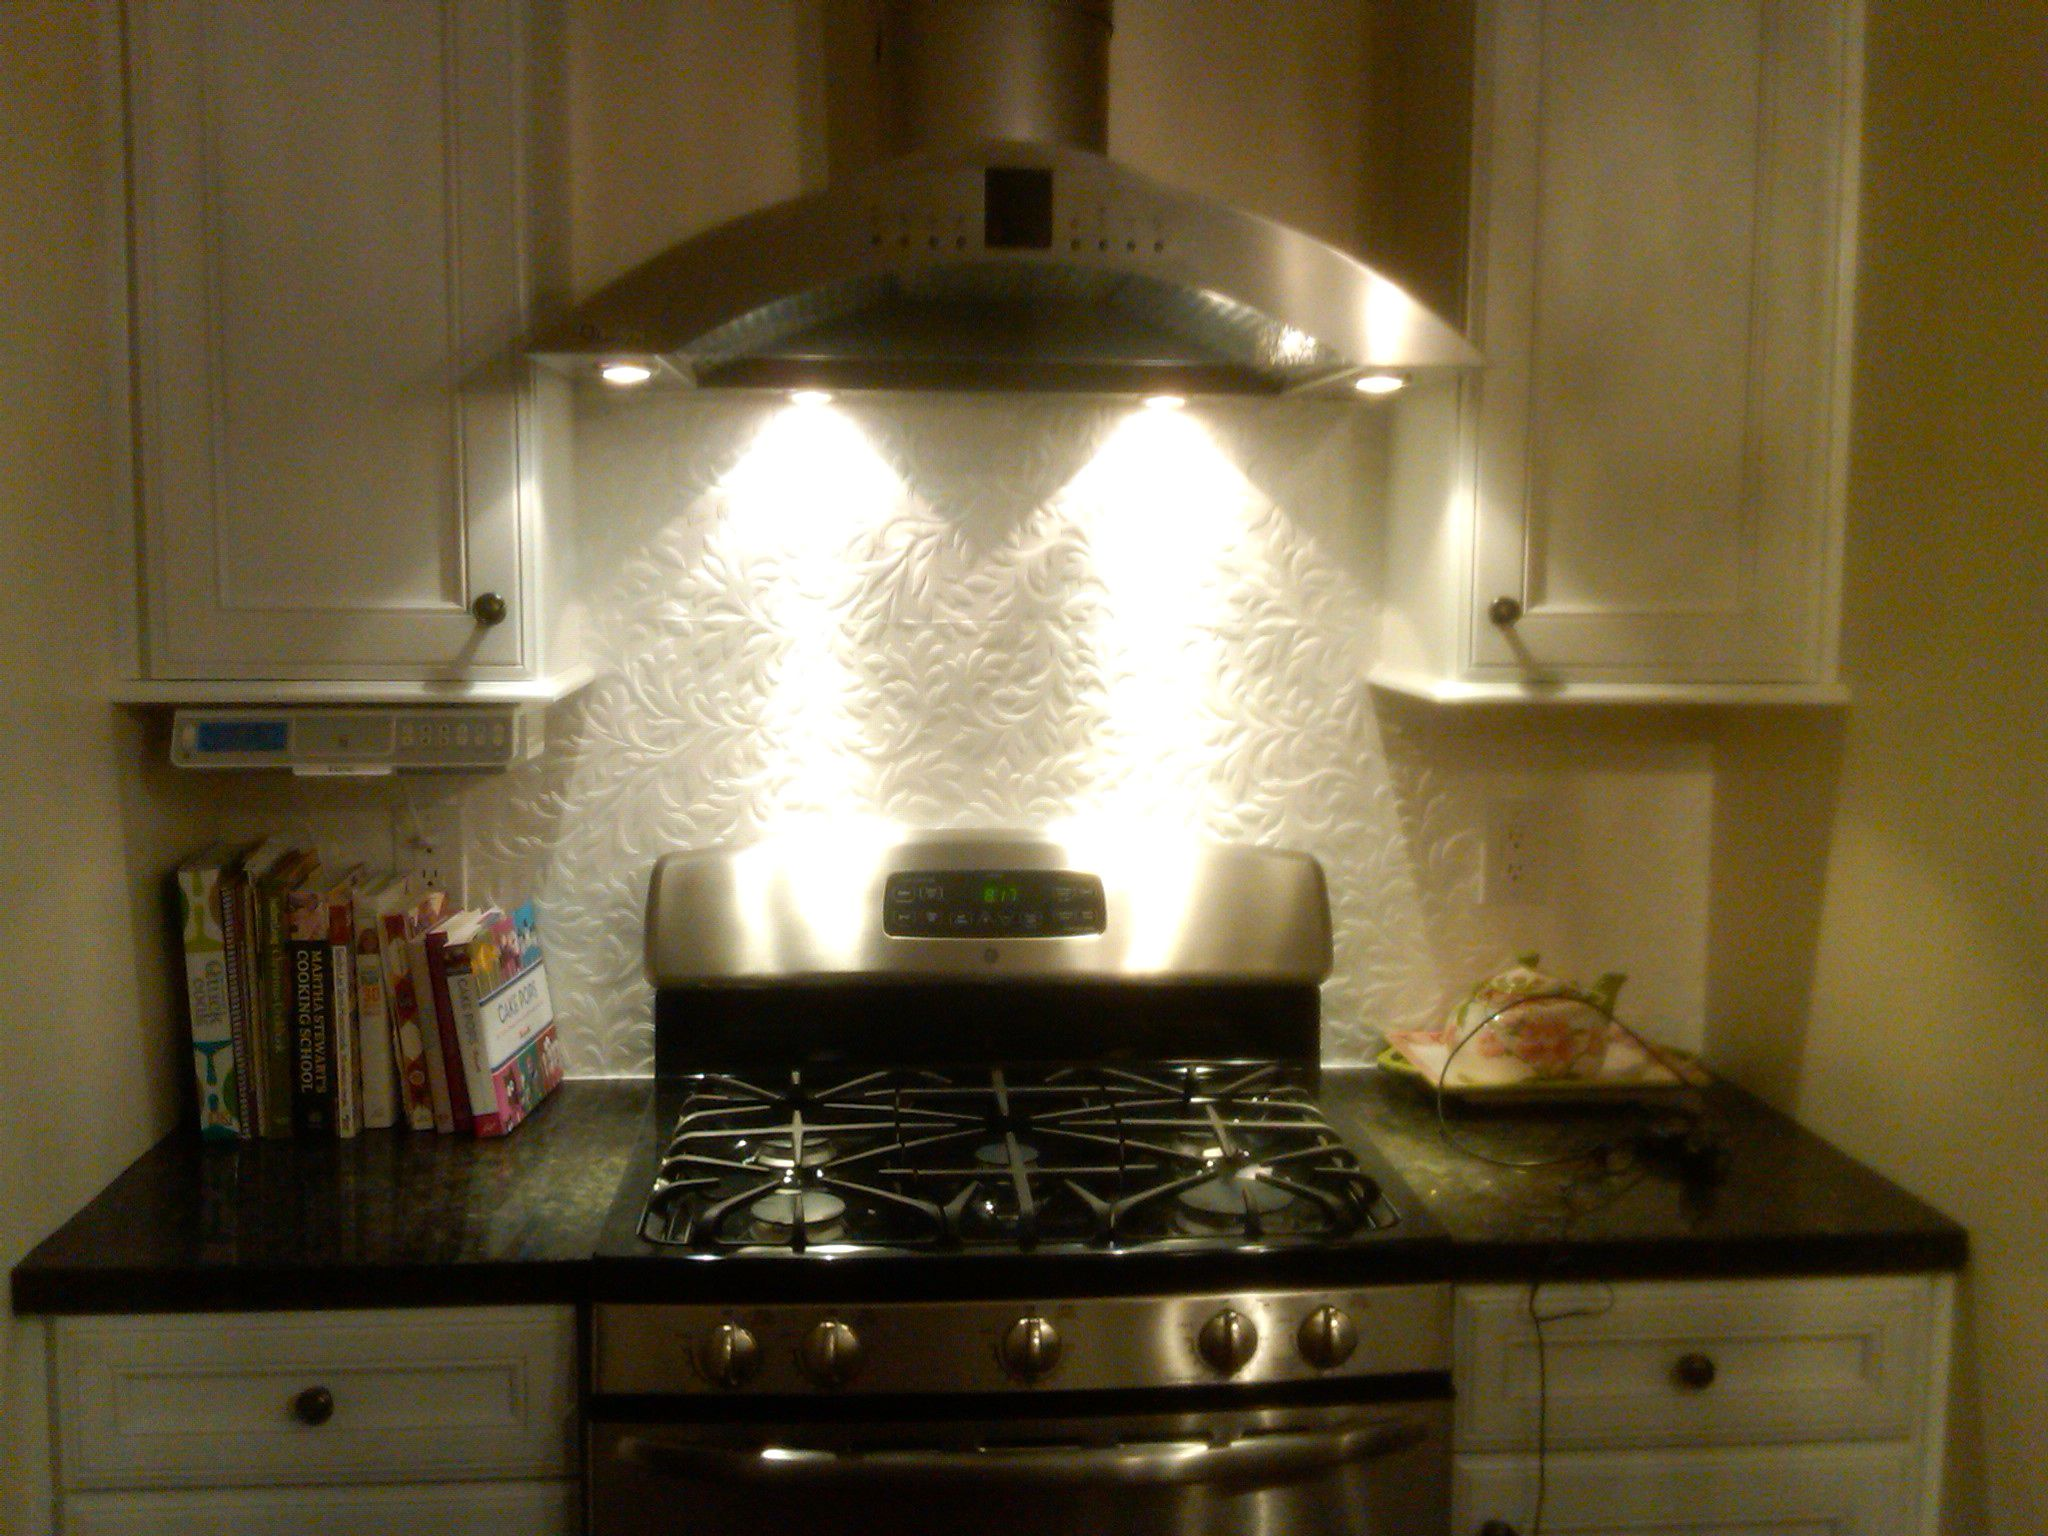 Wallpaper Backsplash - use Anaglypta textured wallpaper & paint with several coats of high gloss ...